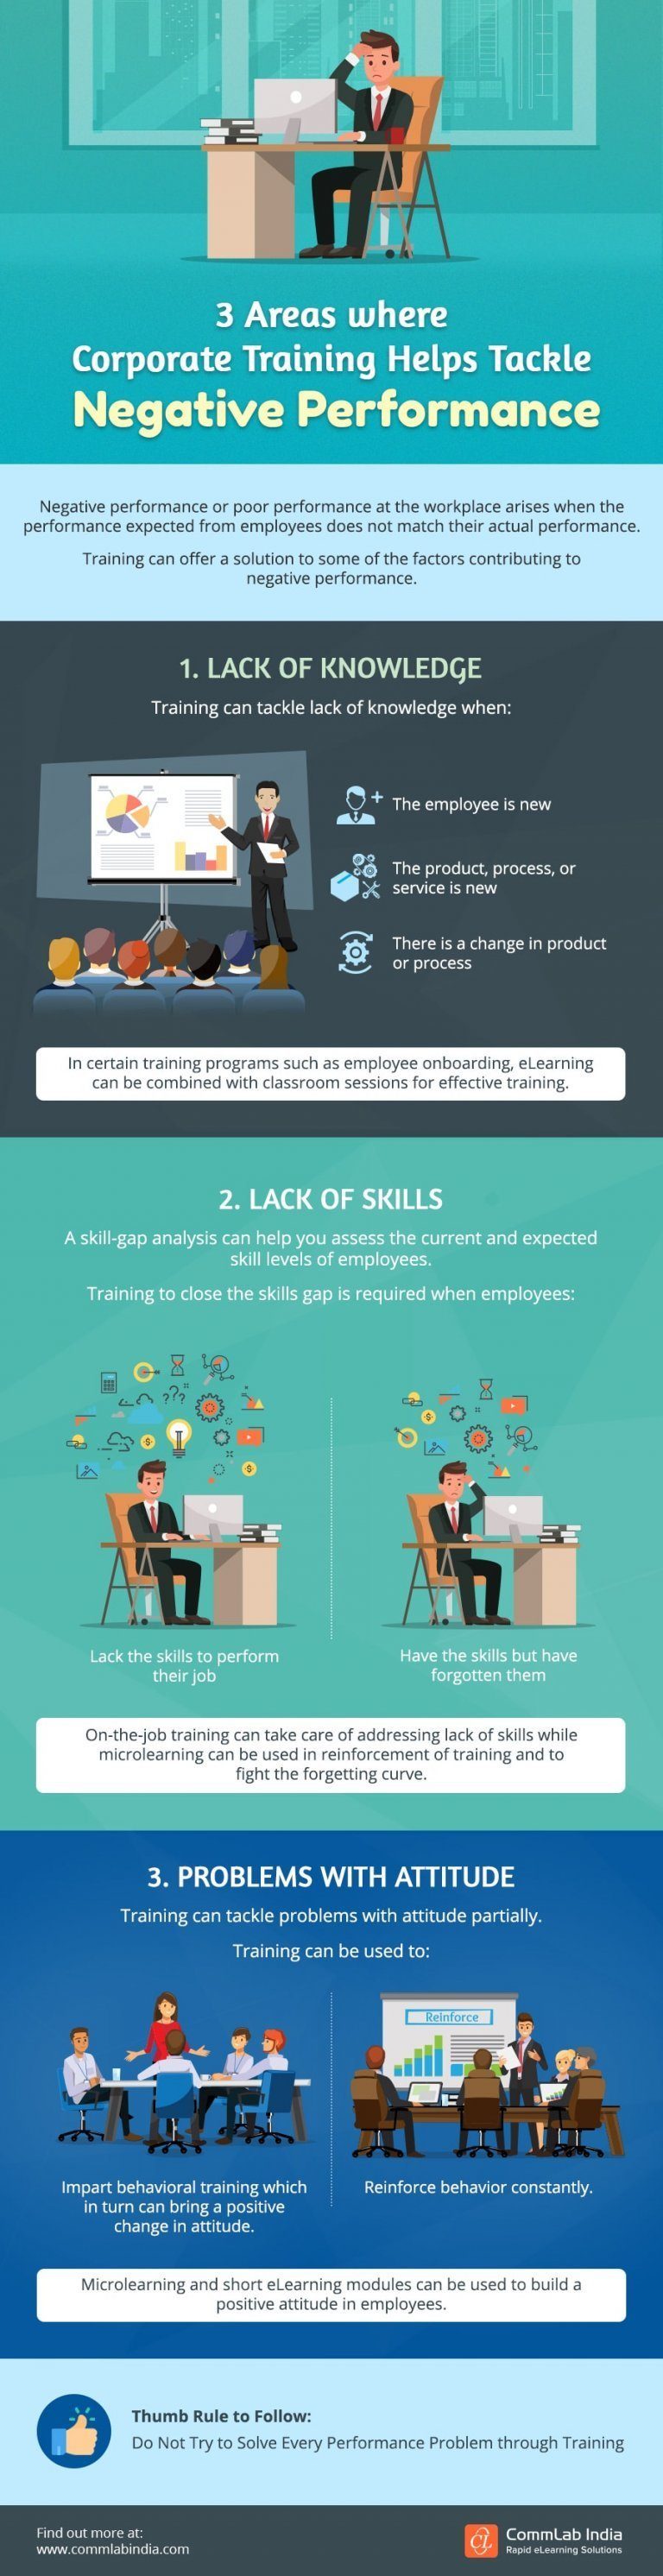 3 Areas Where Corporate Training Can Tackle Negative Performance